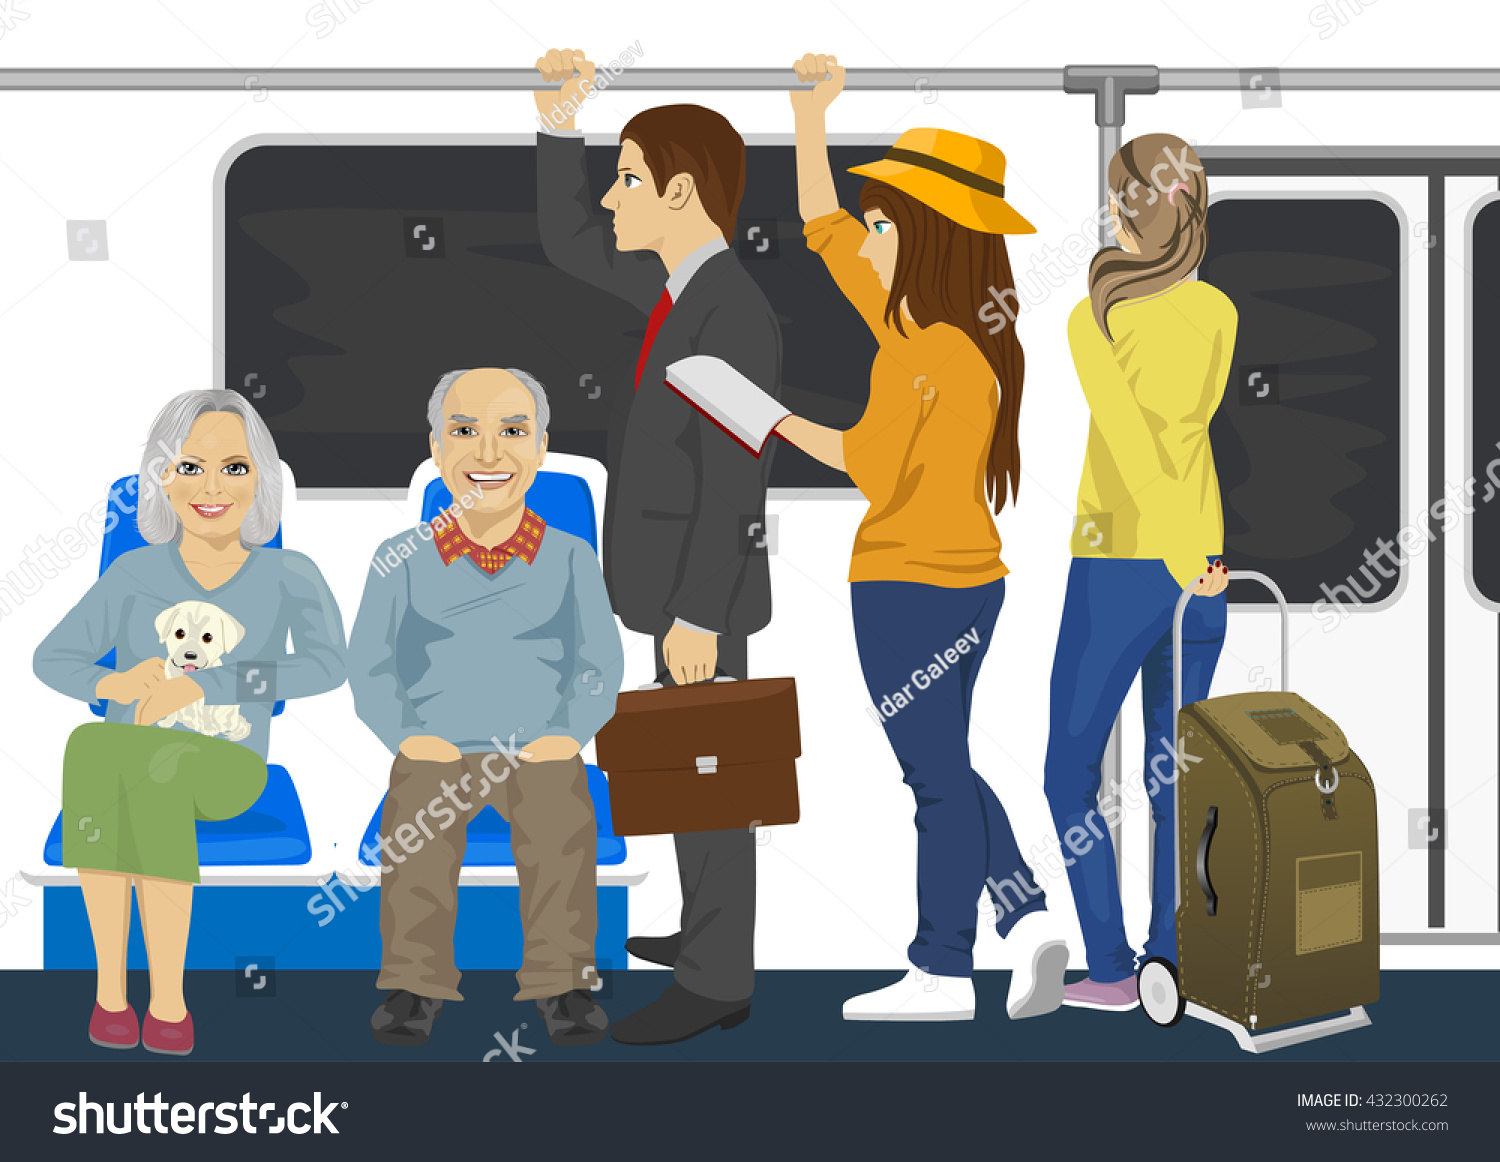 Diverse People Inside Metro Subway Train Stock Vector ...